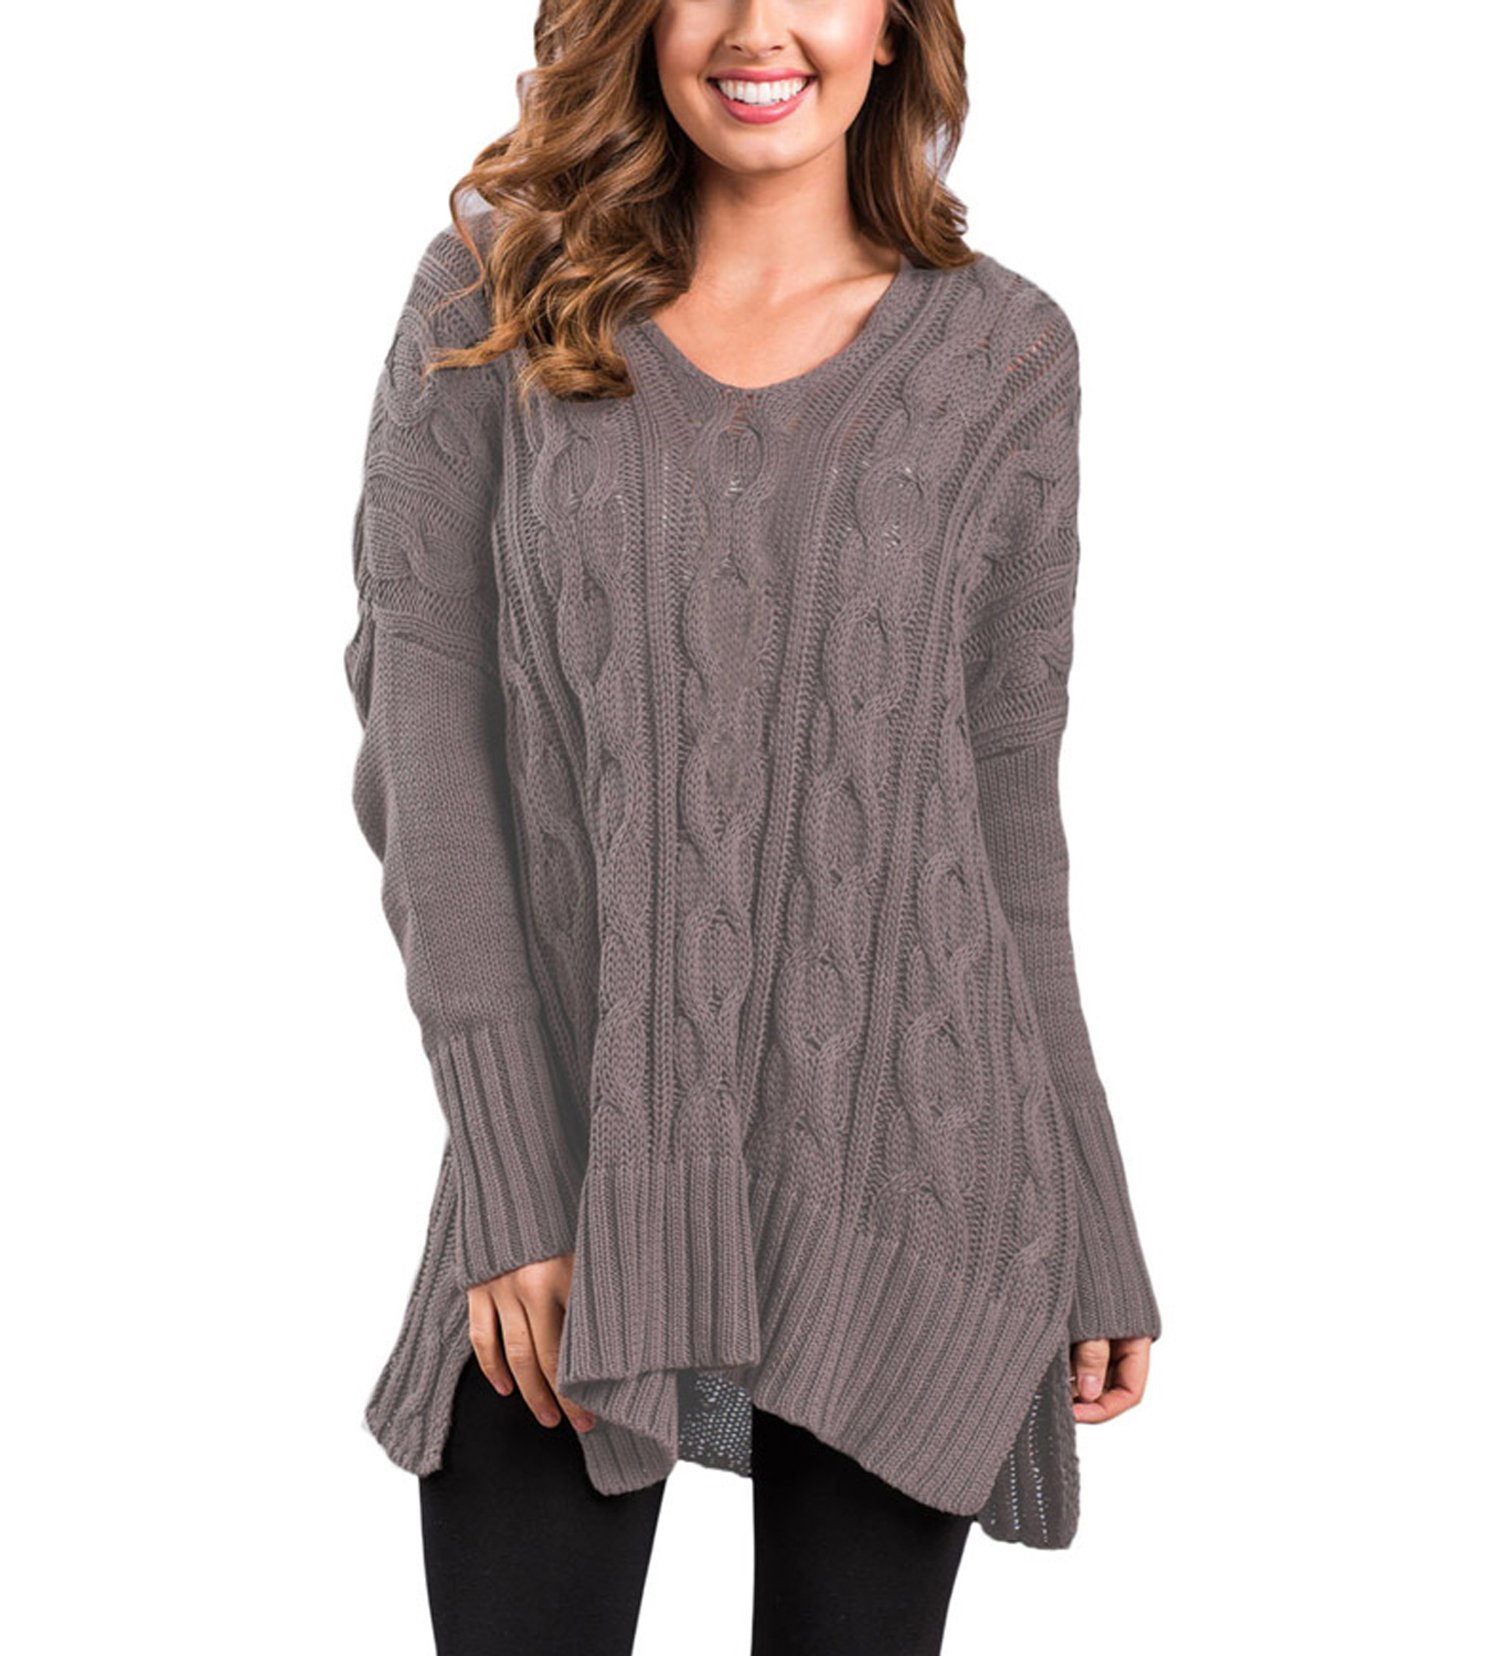 Fuwenni Women's Long Sleeve Oversized Casual V Neck Loose Fit Cable Knit Sweater Pullover Jumper Coffee XXL